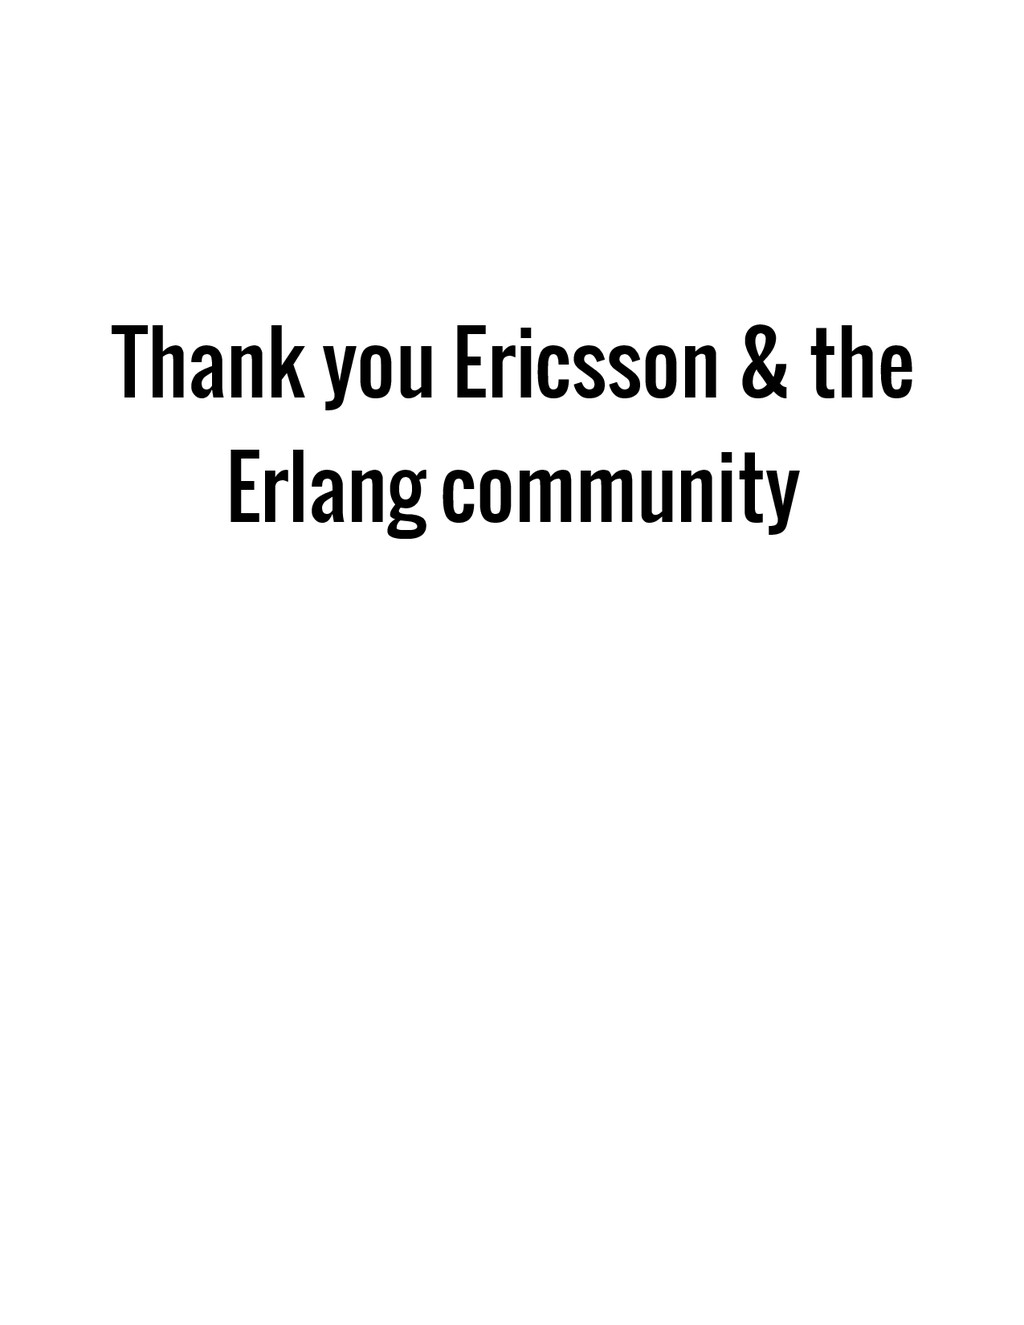 Thank you Ericsson & the Erlang community